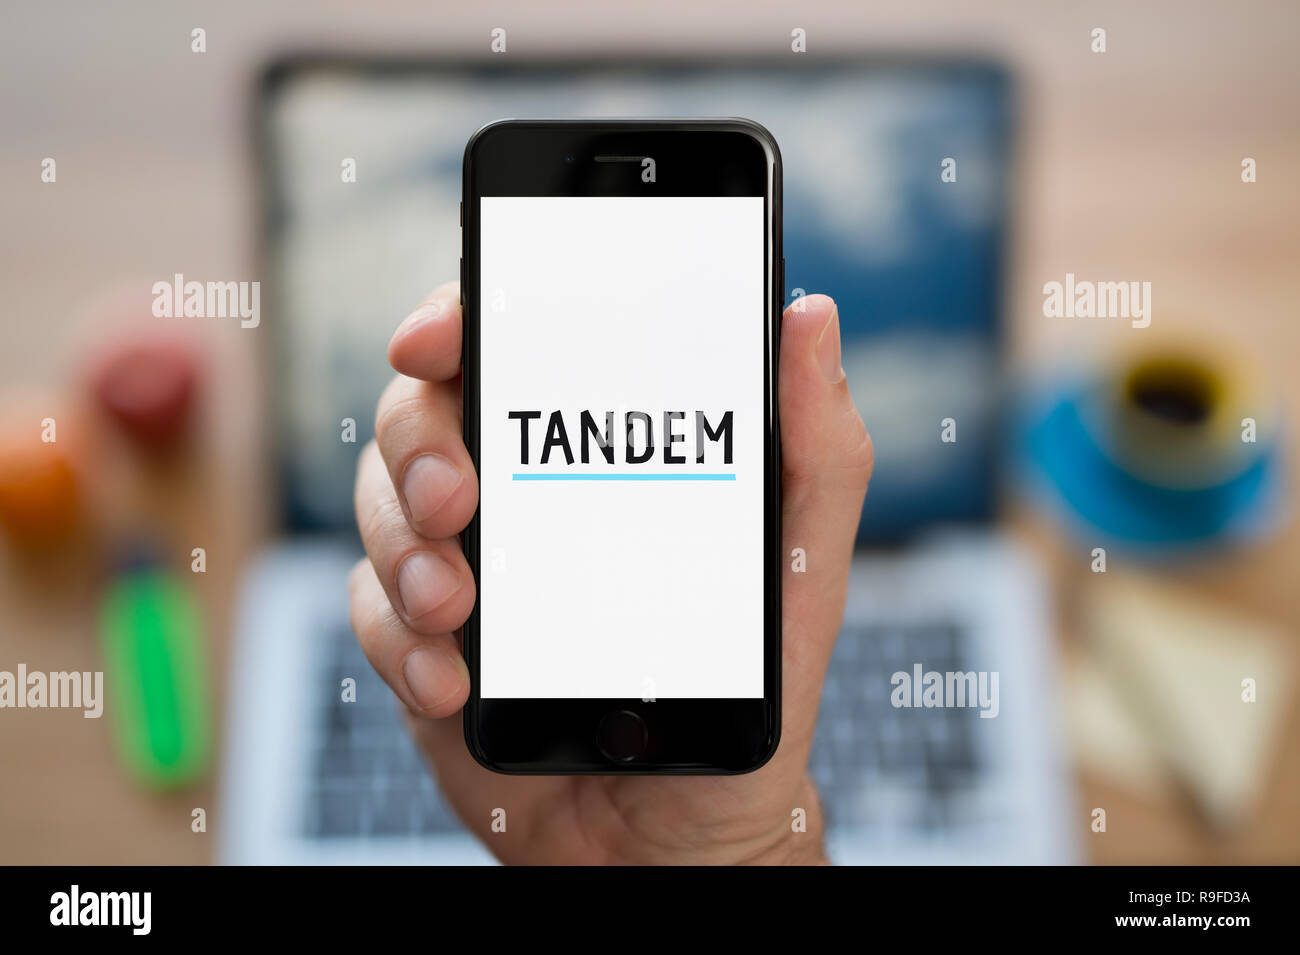 A man looks at his iPhone which displays the Tandem logo (Editorial use only). - Stock Image